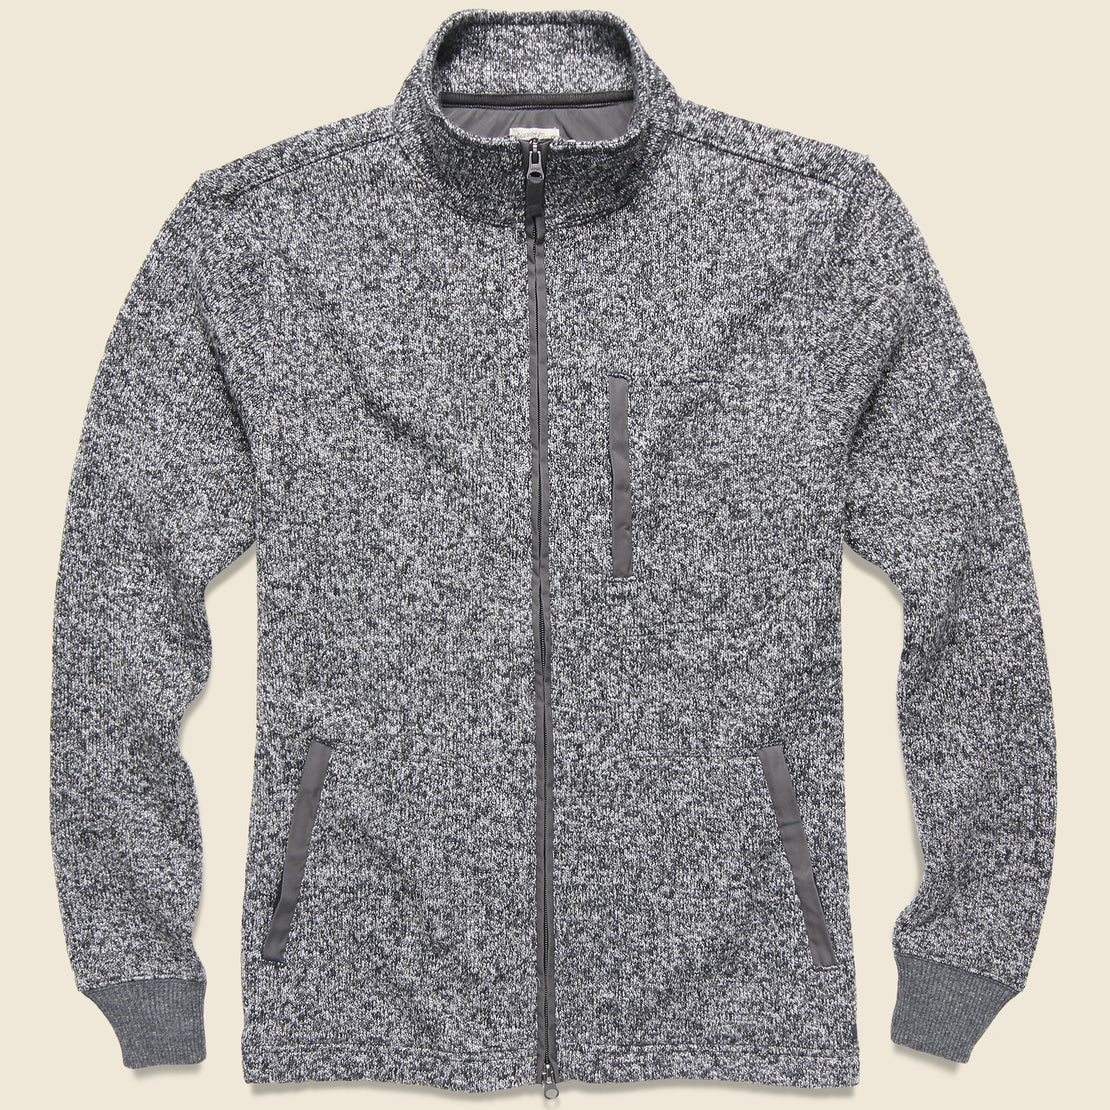 Faherty Bridger Range Jacket - Charcoal Marl